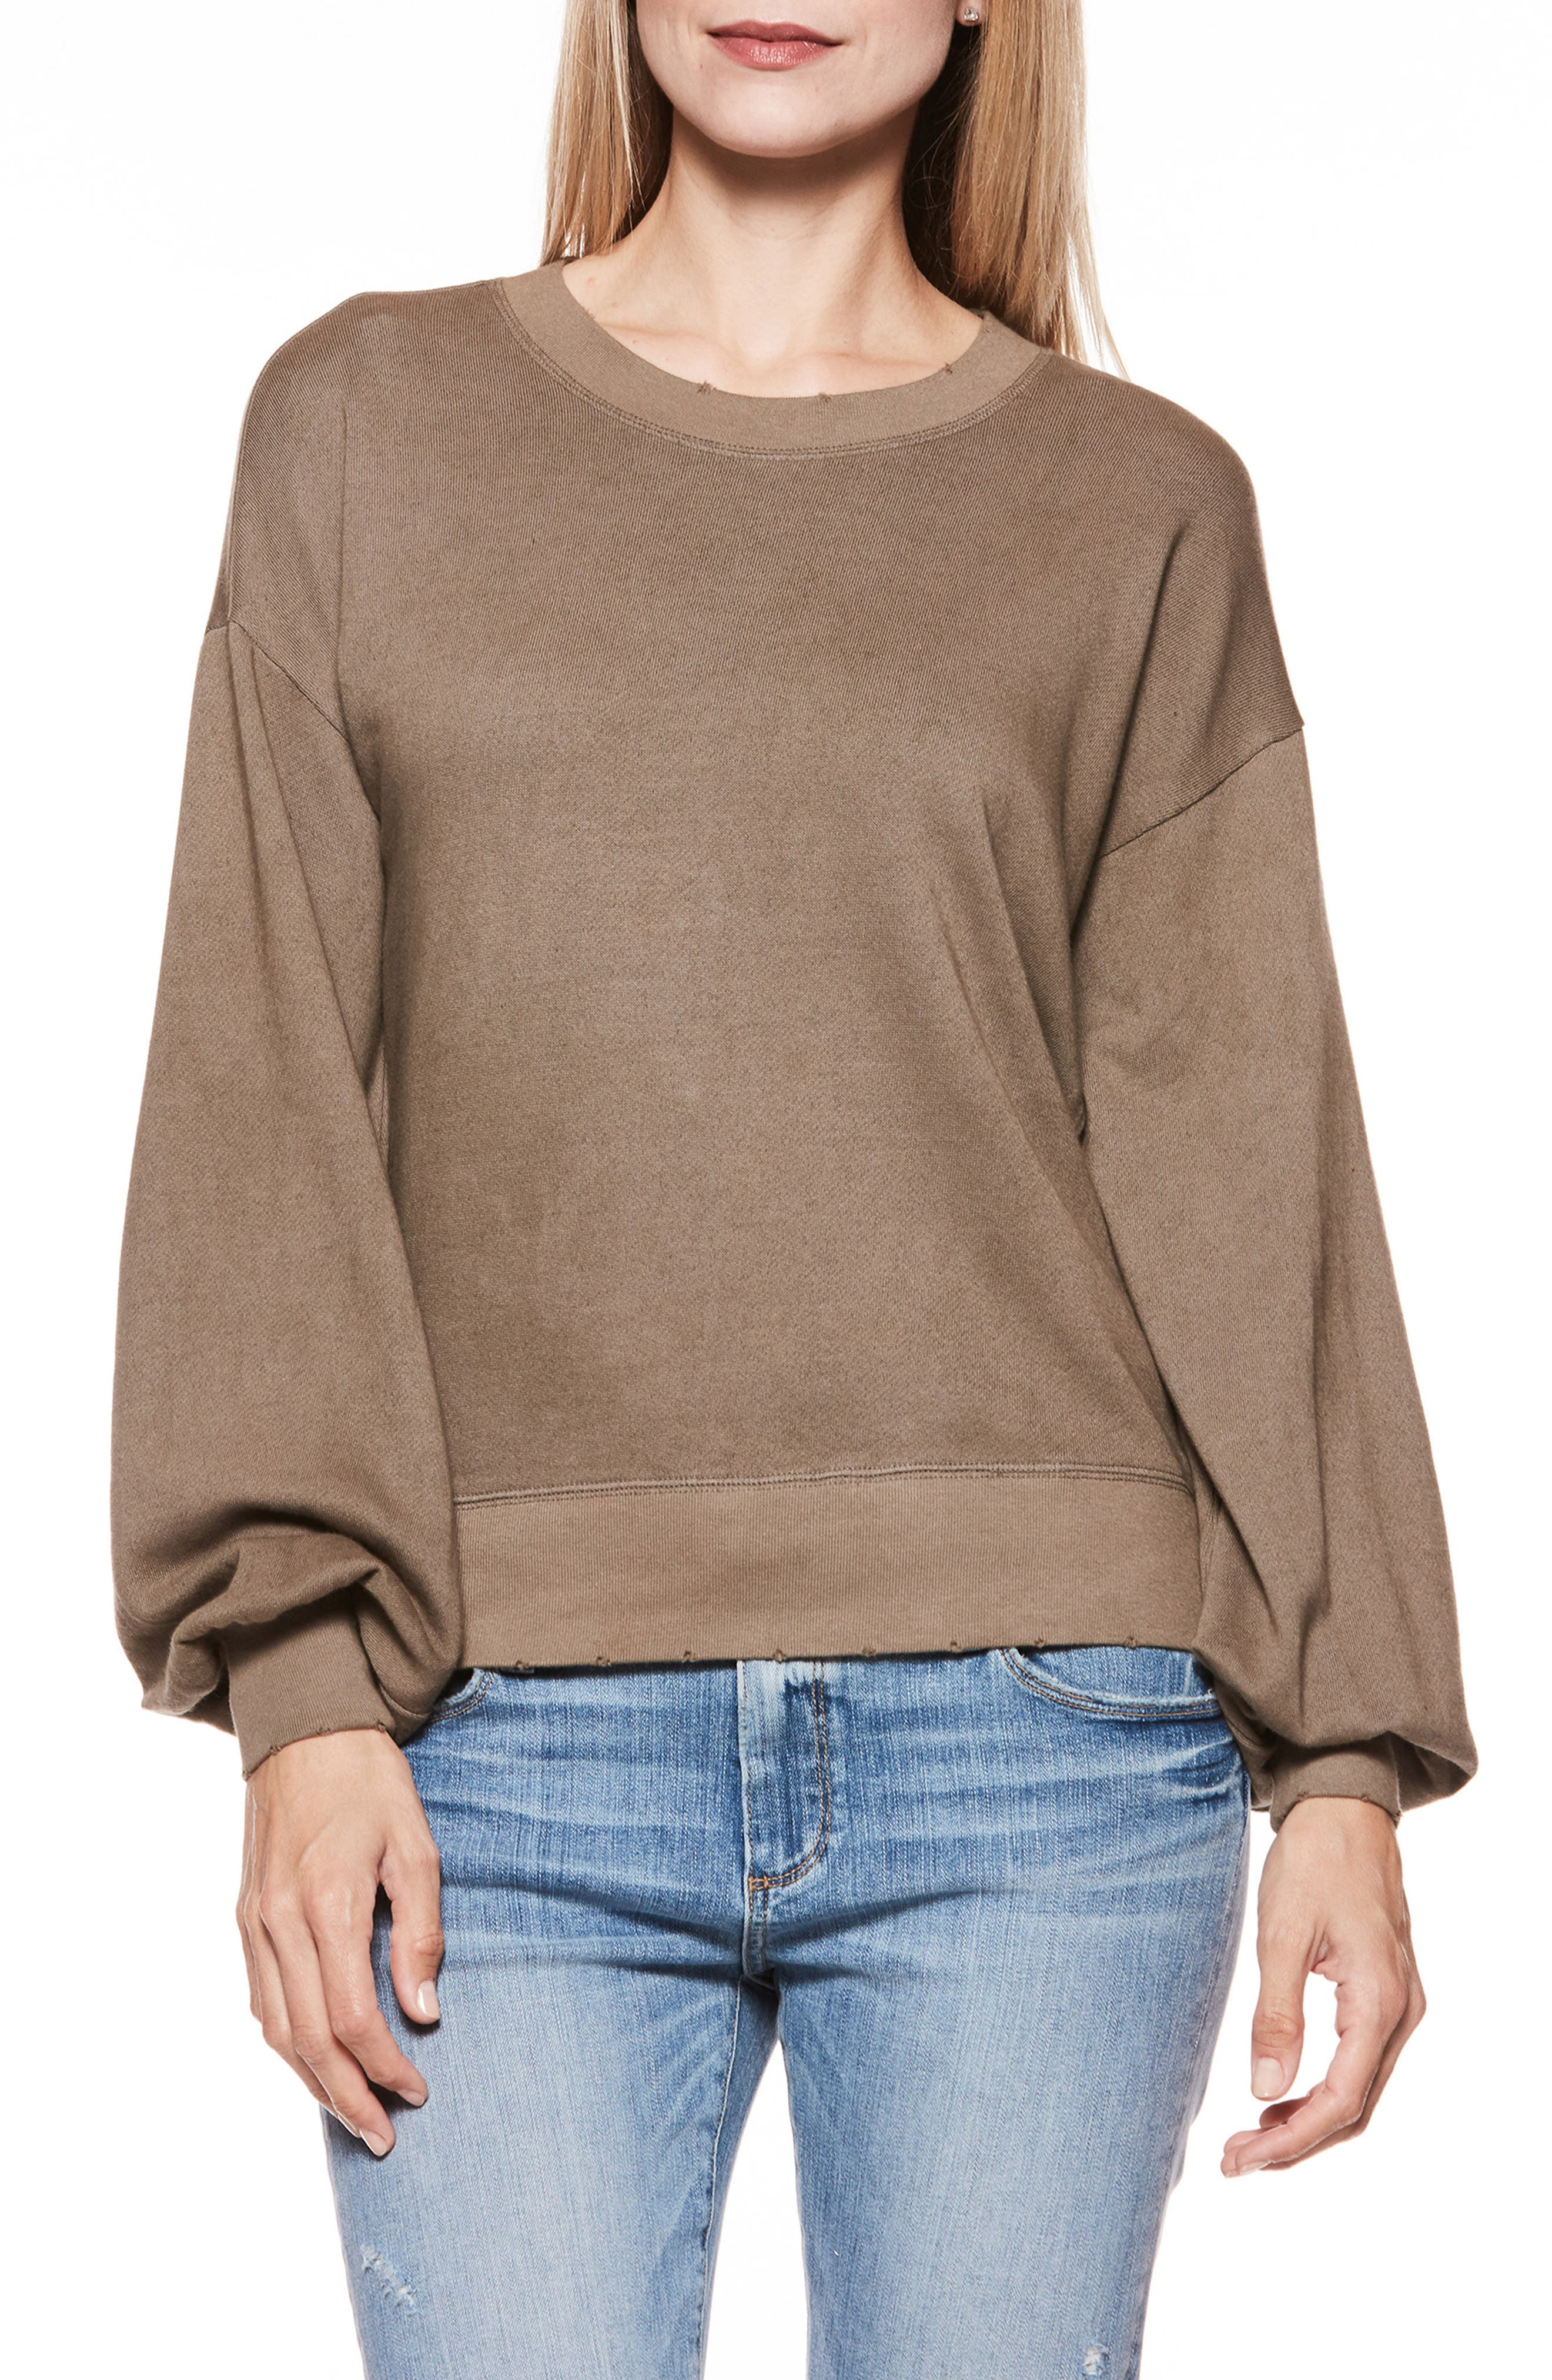 Cortlynn Sweatshirt,                             Main thumbnail 1, color,                             TANNED OLIVE